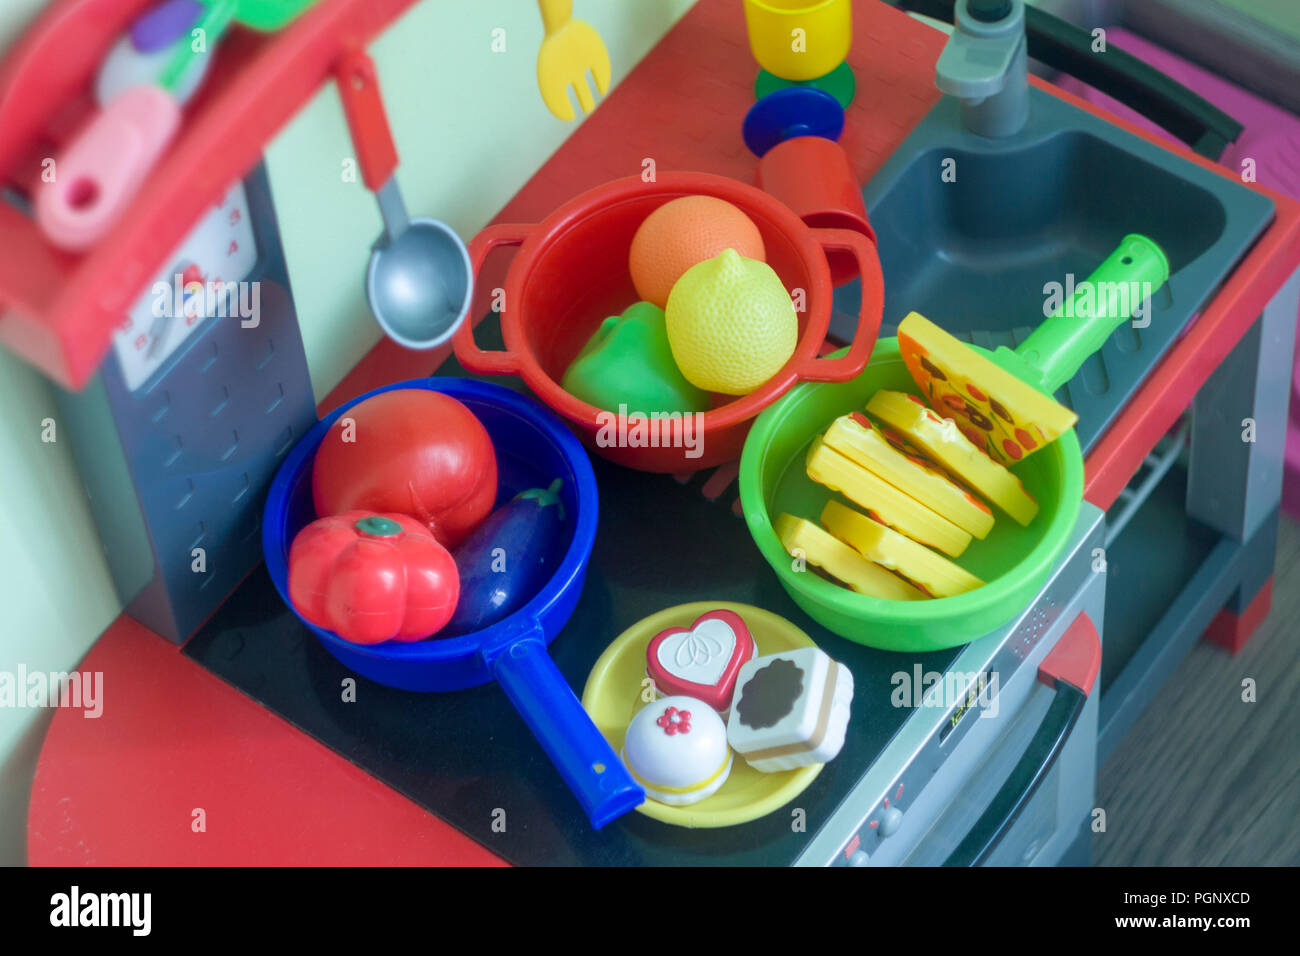 Budapest, Hungary - 07/30/2018: Girl's plastic kitchen for playing with various colors in the room. Stock Photo